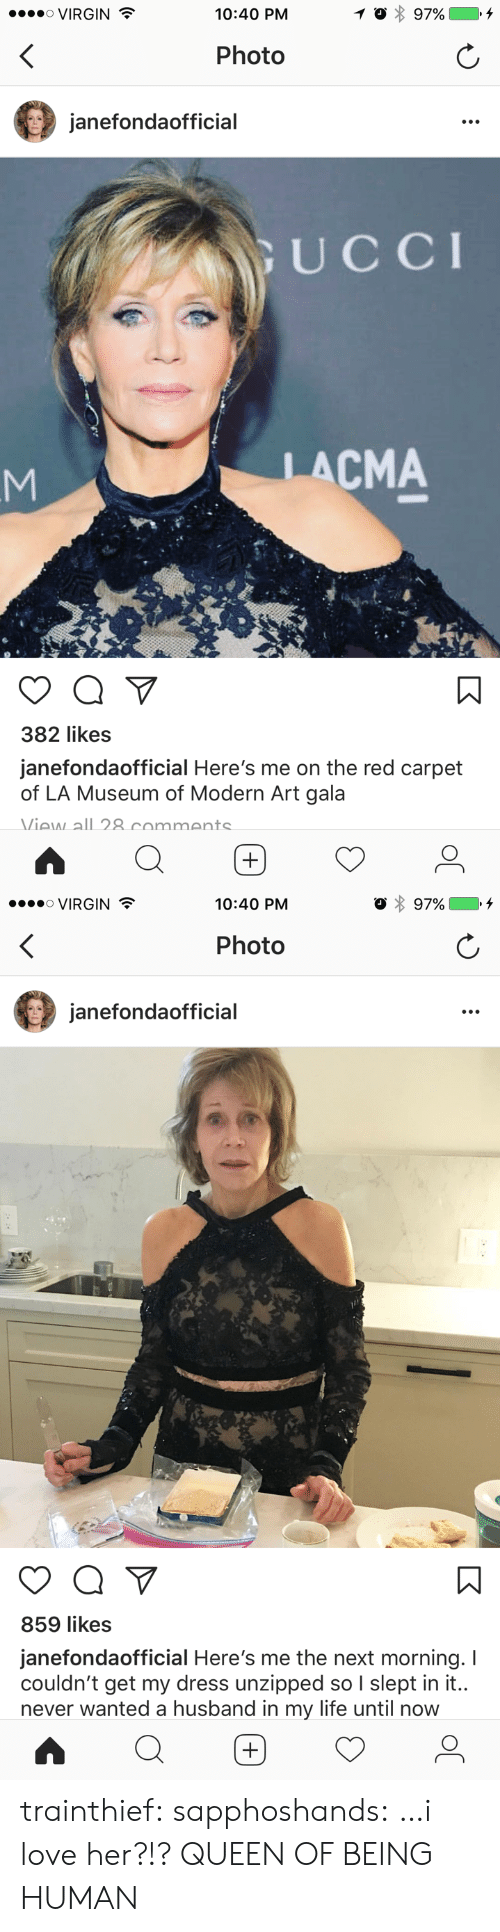 Life, Love, and Target: ....。VIRGIN  10:40 PM  Photo  janefondaofficial  UCCI  LACMA  382 likes  janefondaofficial Here's me on the red carpet  of LA Museum of Modern Art gala  Viaw all 8 commants   VIRGIN  10:40 PM  Photo  janefondaofficial  859 likes  janefondaofficial Here's me the next morning. I  couldn't get my dress unzipped so I slept in it..  never wanted a husband in my life until now trainthief: sapphoshands: …i love her?!? QUEEN OF BEING HUMAN